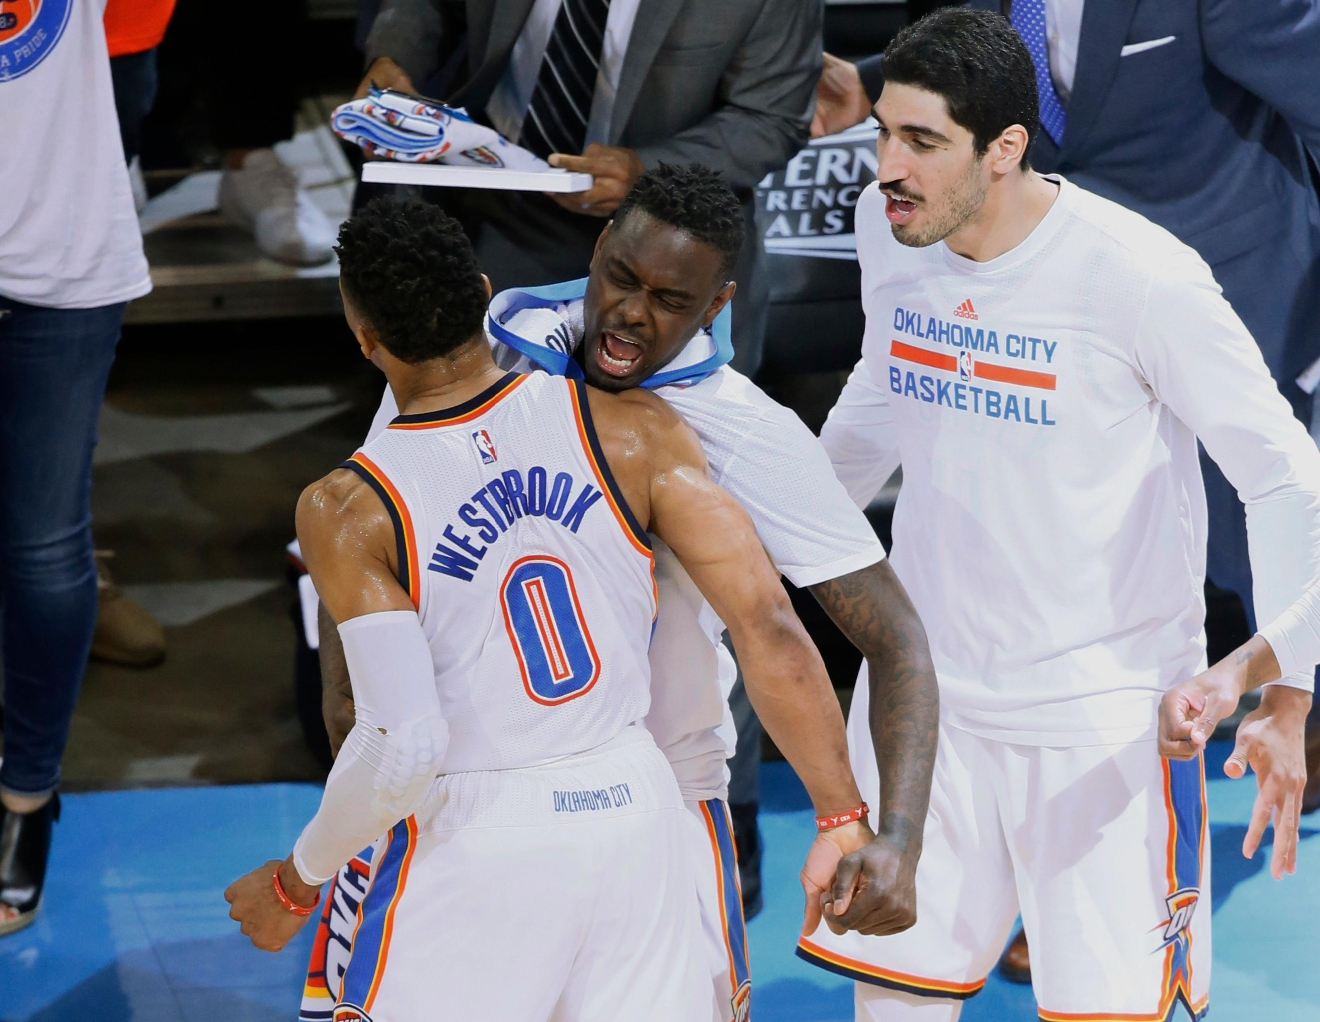 Oklahoma City Thunder guard Russell Westbrook (0) celebrates with teammates Andrew Morrow, center, and Enes Kanter, right, following a basket against the Golden State Warriors in Game 4 of the NBA basketball Western Conference finals in Oklahoma City, Tuesday, May 24,, 2016. The Thunder won 118-94. (AP Photo/Sue Ogrocki)